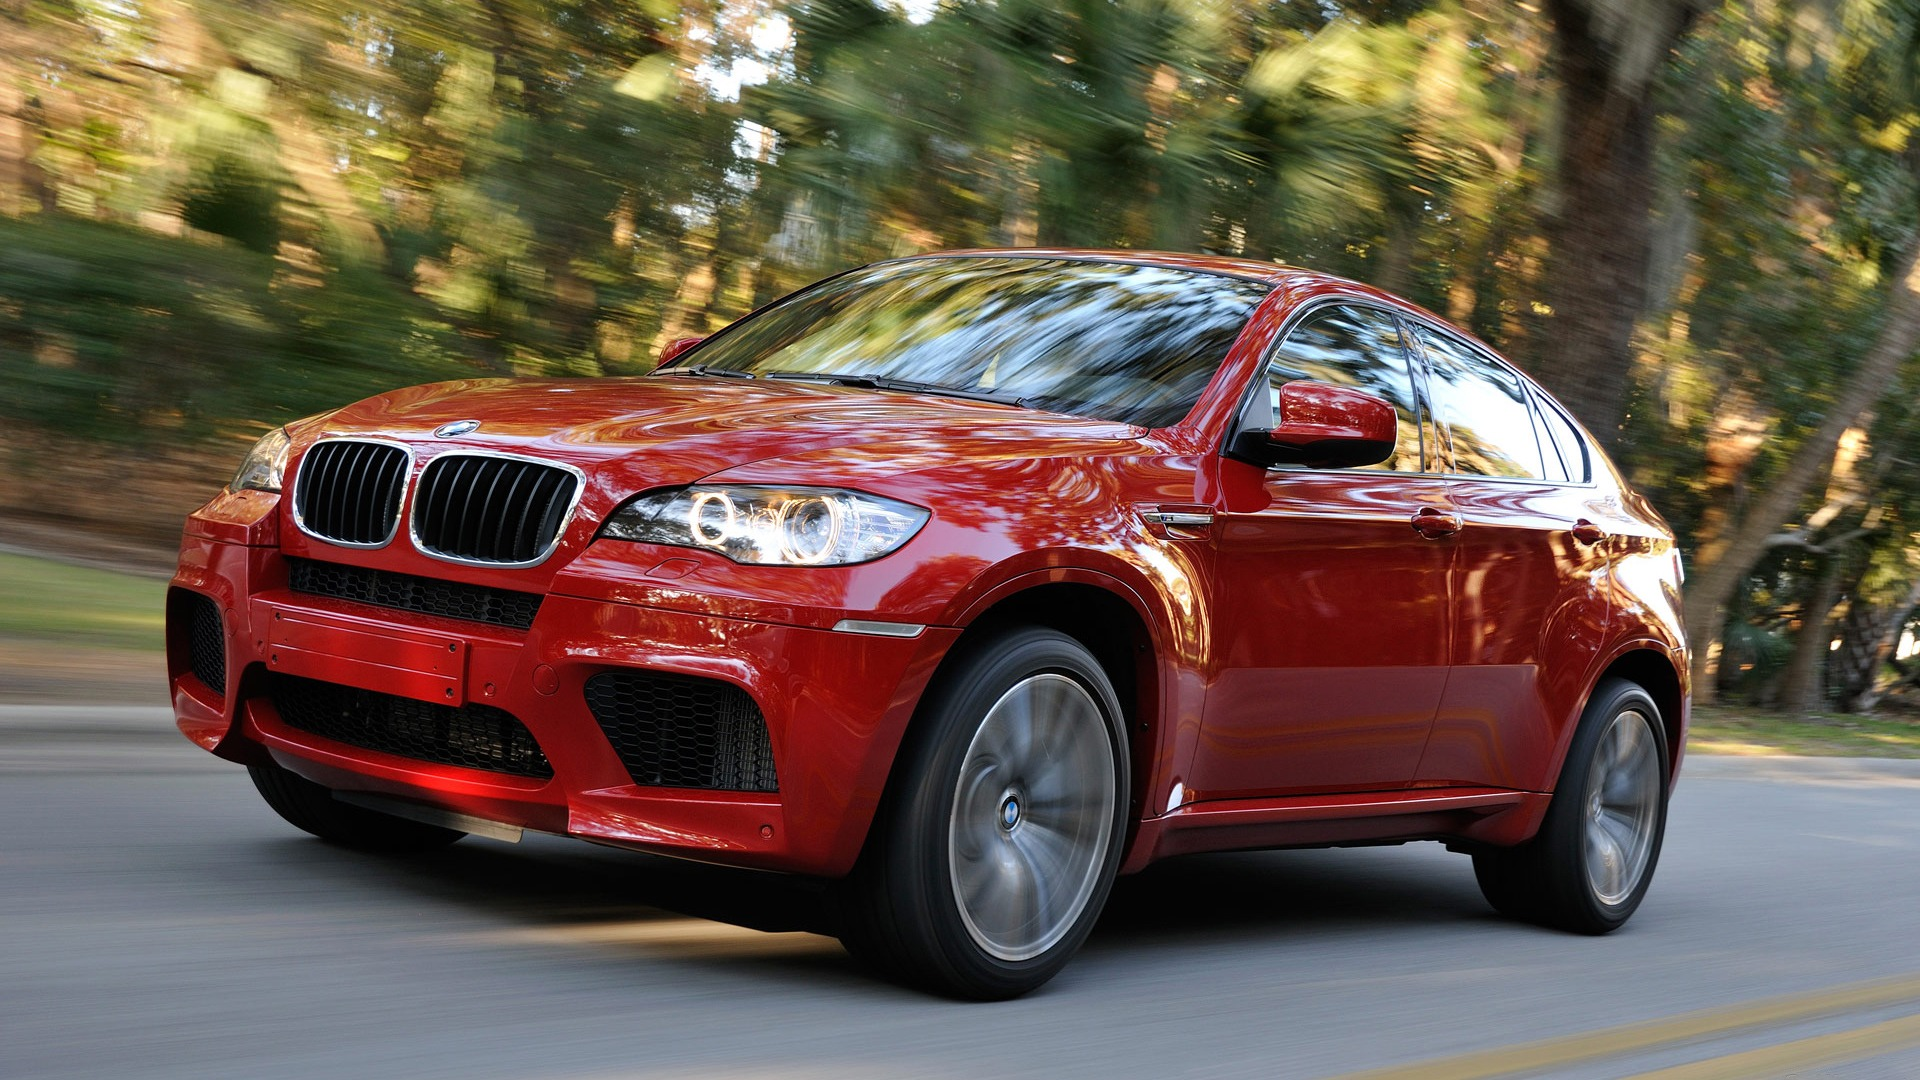 Bmw X6 M Wallpaper Bmw Cars Wallpapers In Jpg Format For Free Download